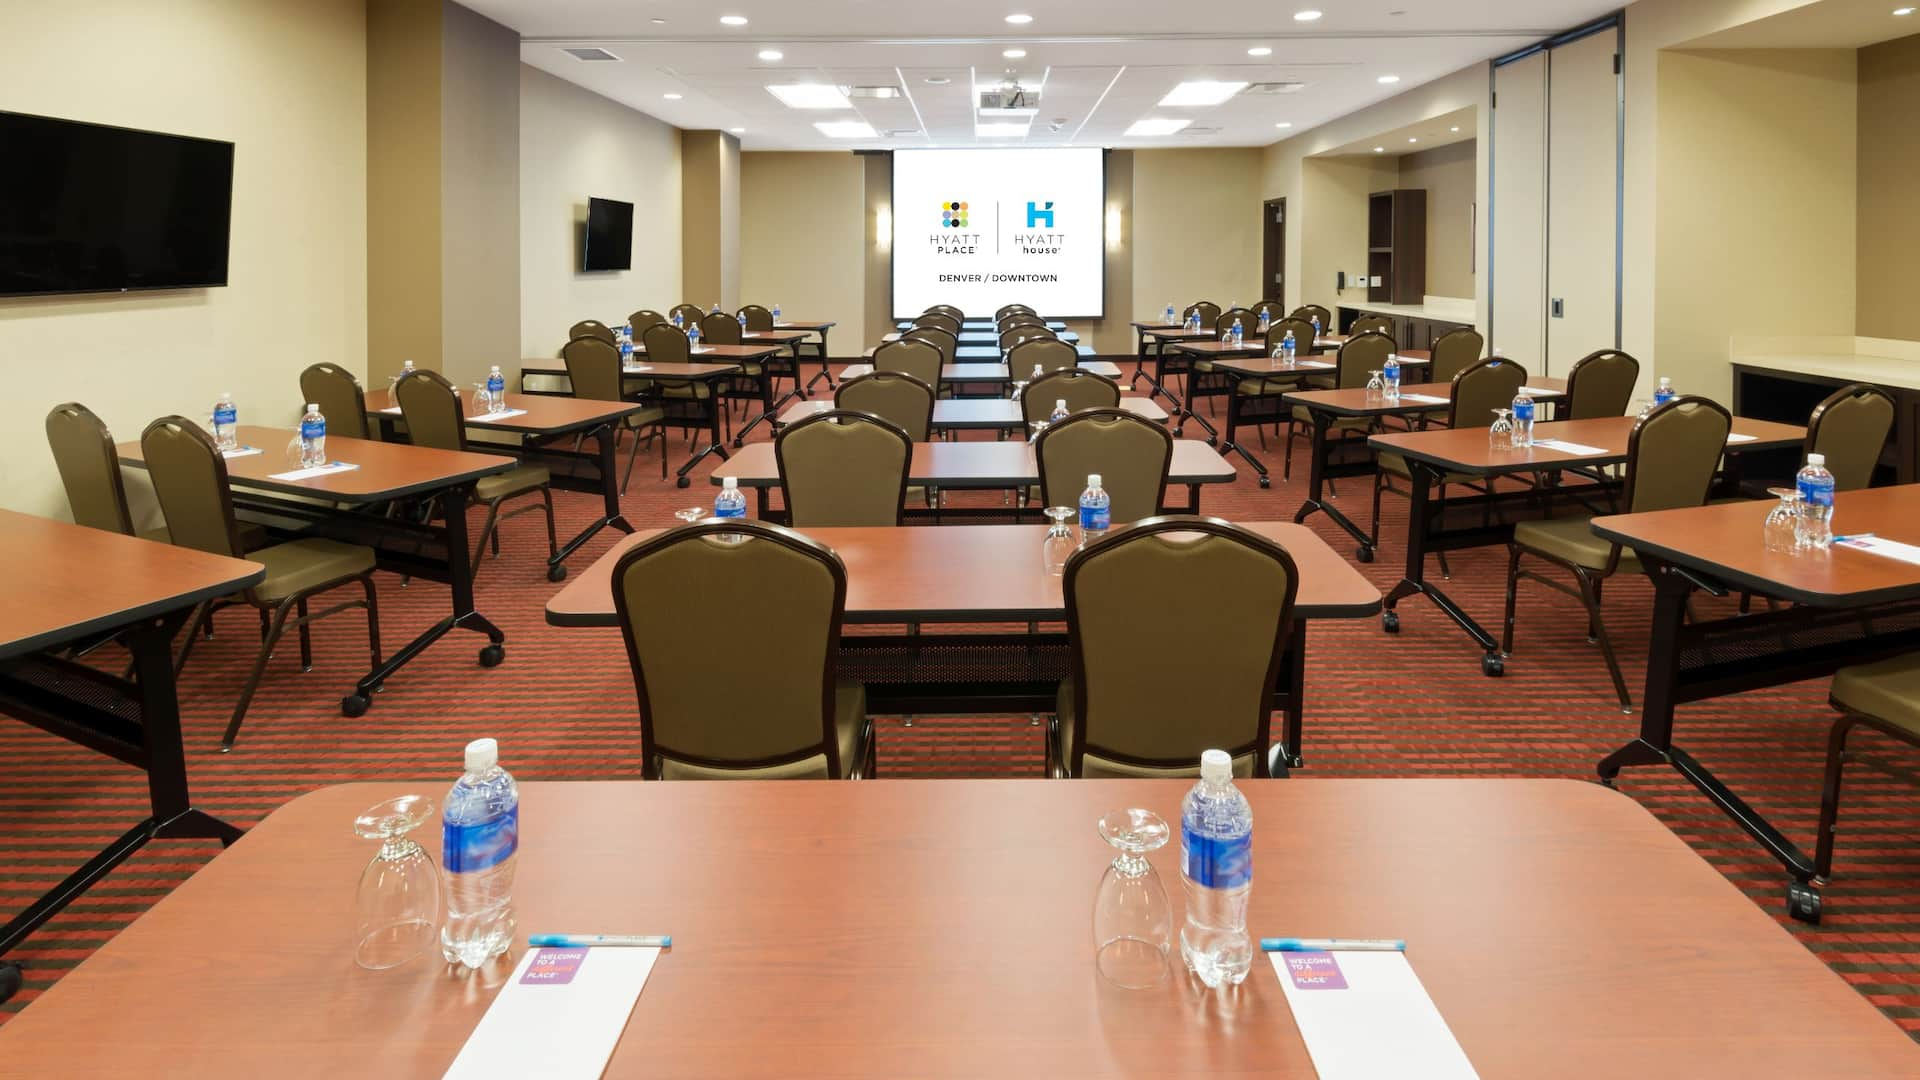 Meeting Space Hyatt House Denver / Downtown